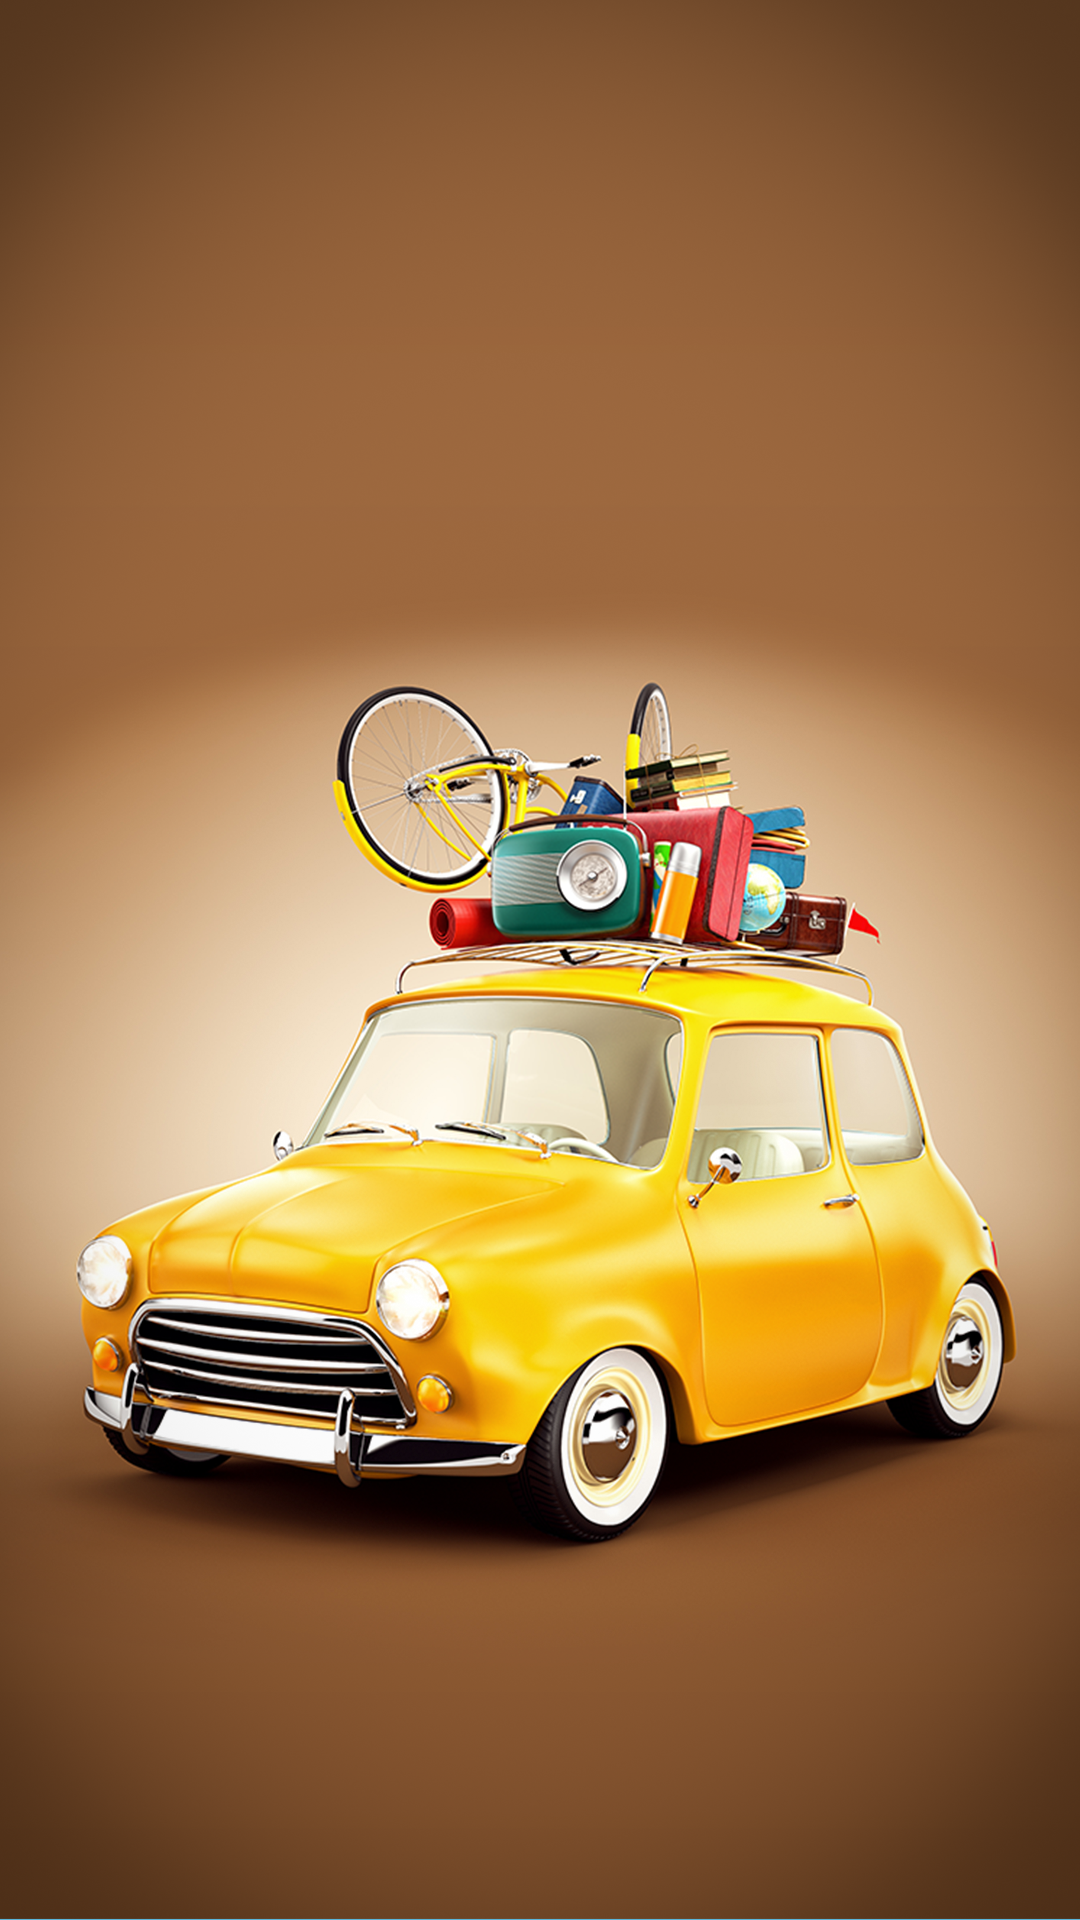 ↑↑tap and get the free app! art creative car travel vacation